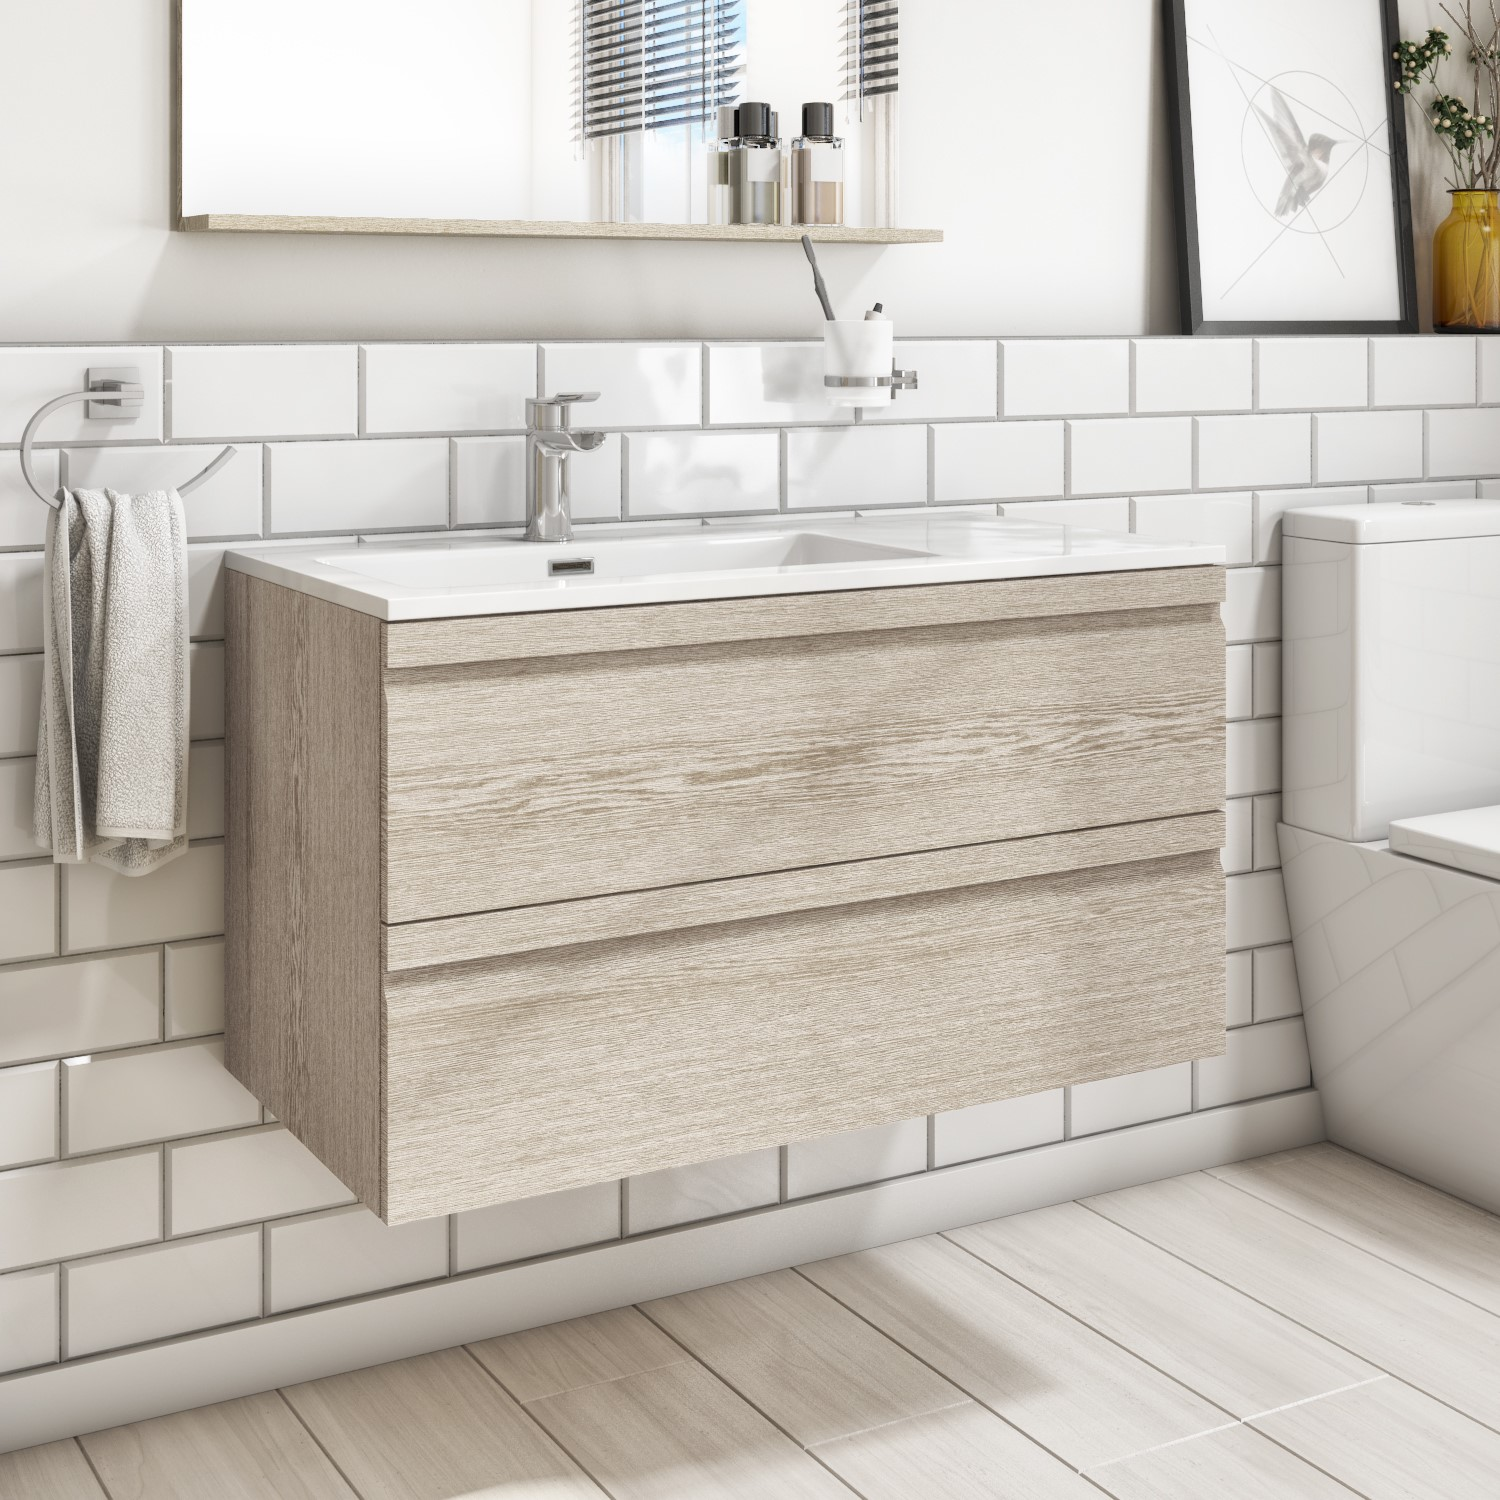 900mm Wall Hung 2 Drawers Vanity Unit with Basin Light Oak -